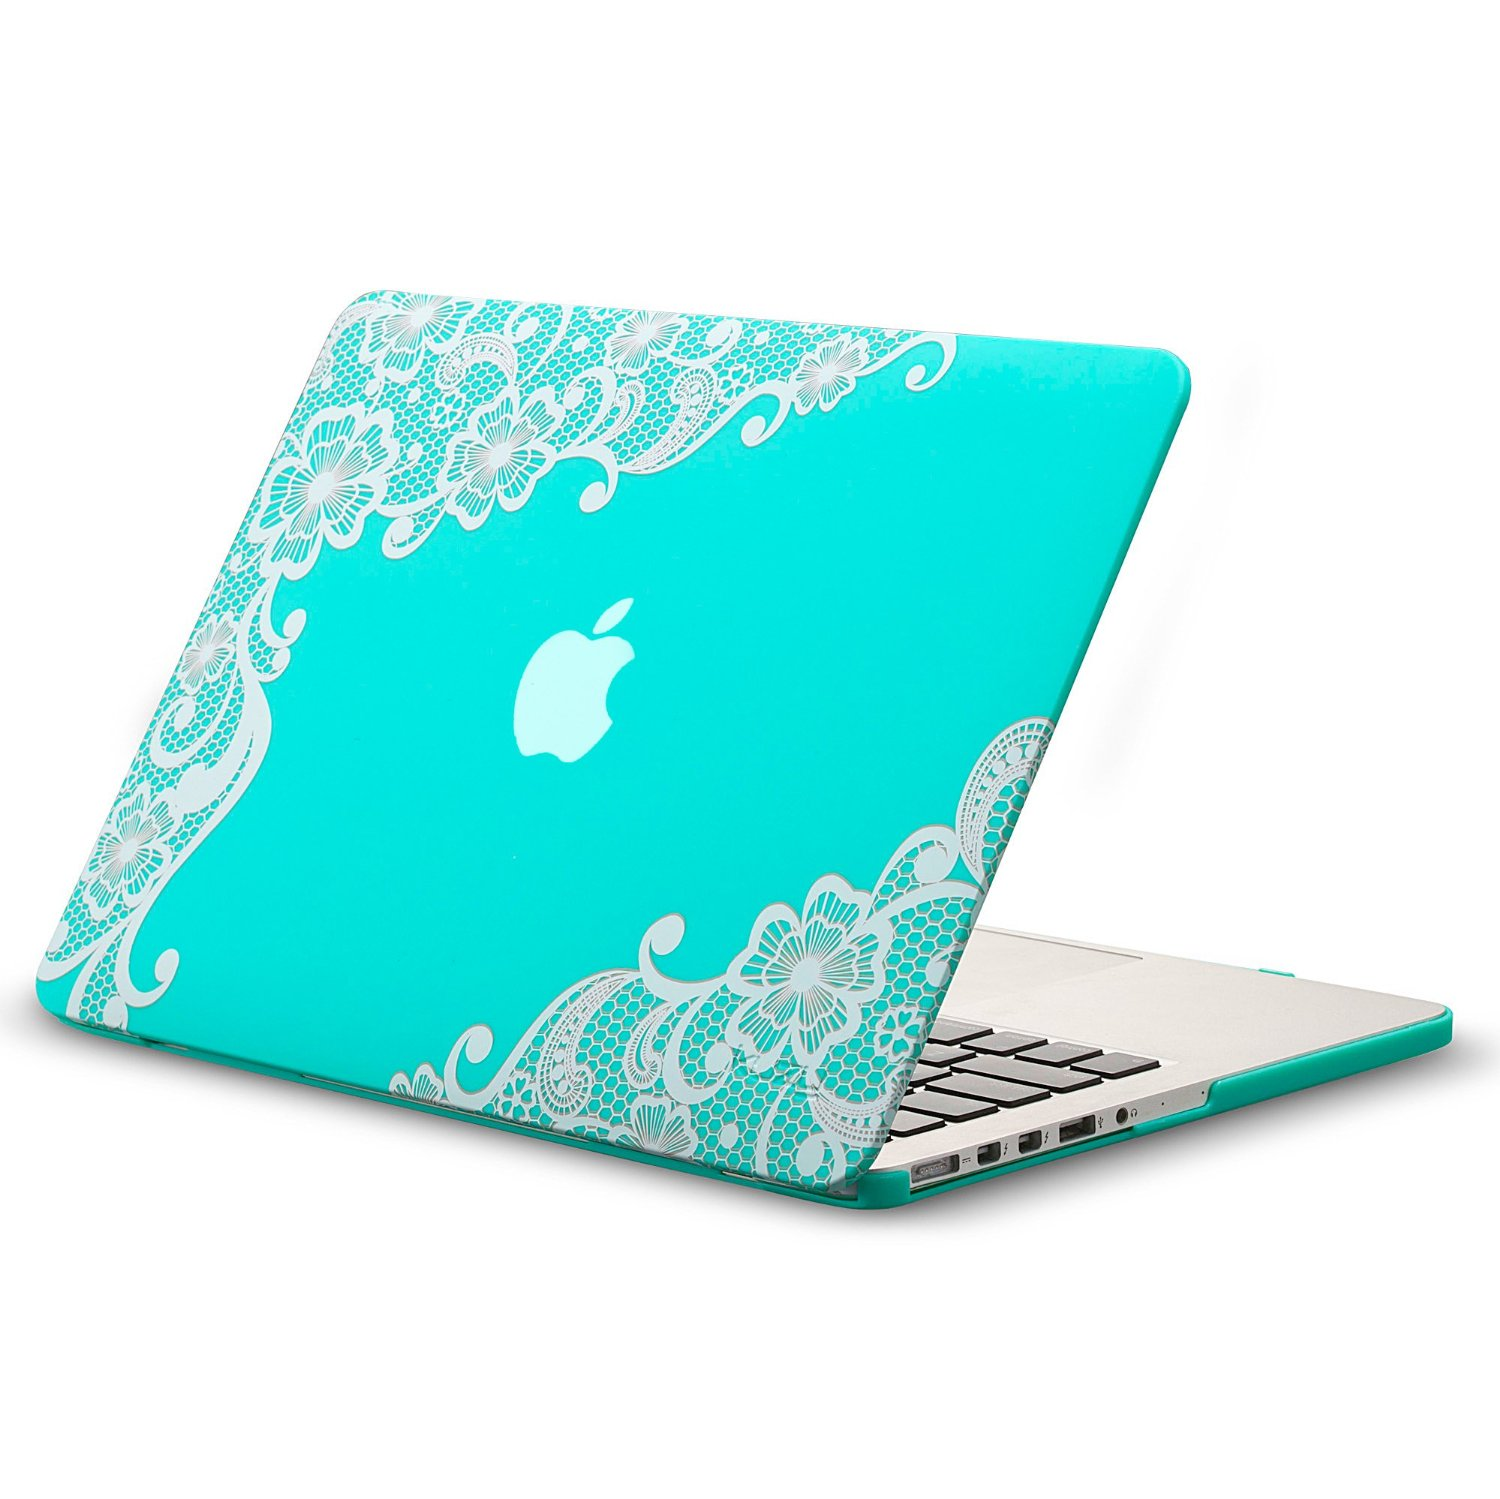 online store dda88 8dbcd Cheap Rubberized Case For Macbook Pro 15, find Rubberized Case For ...